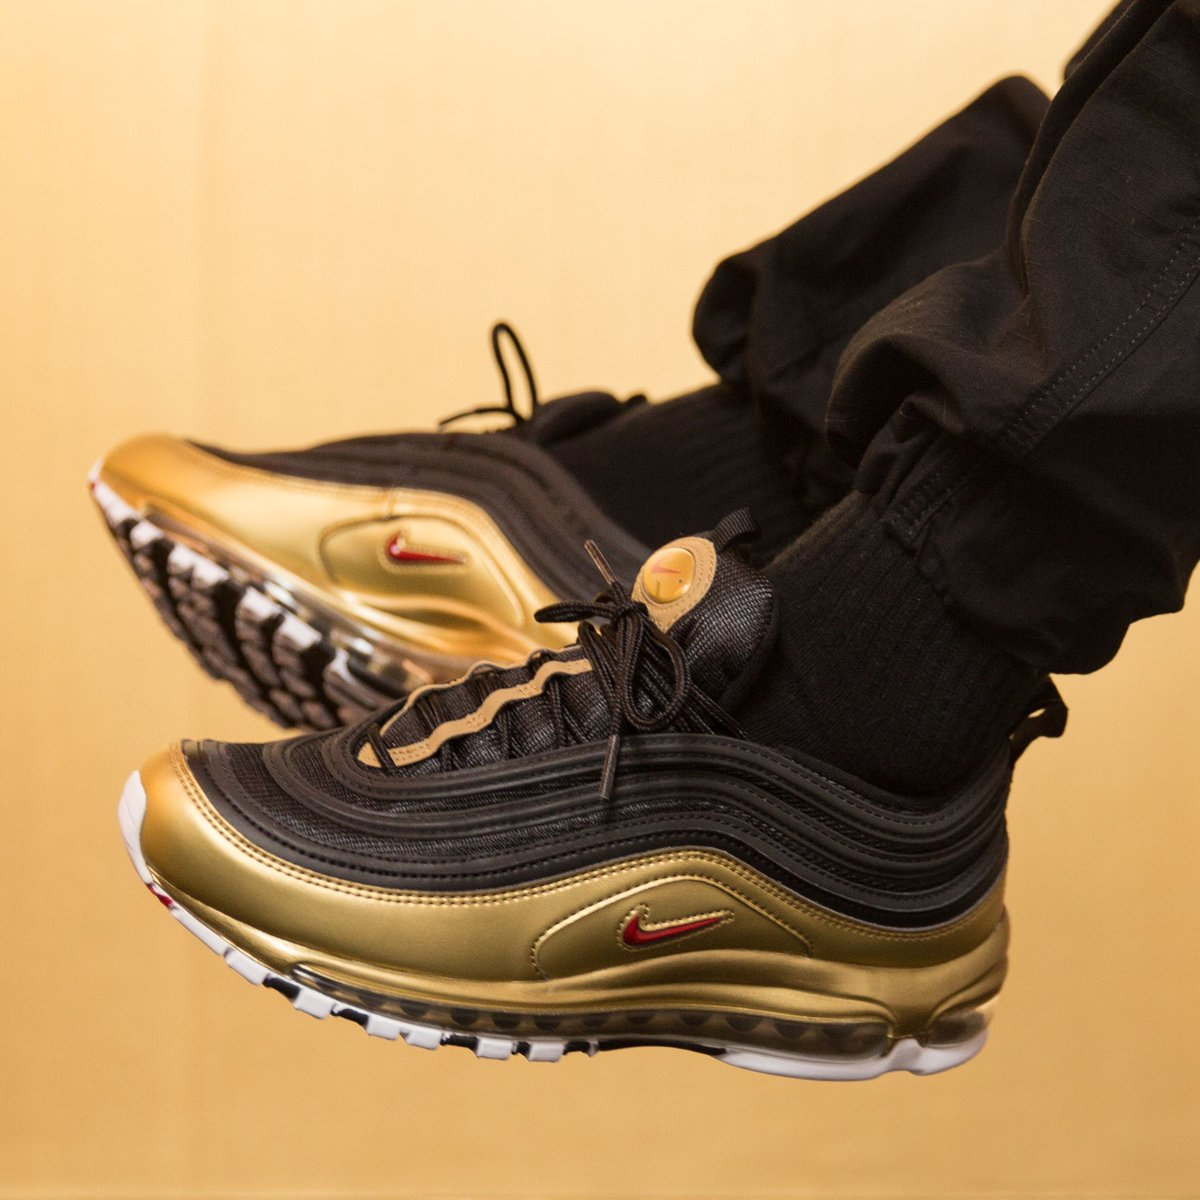 Titolo On Twitter Check Out Our Sale Nike Air Max 97 Qs